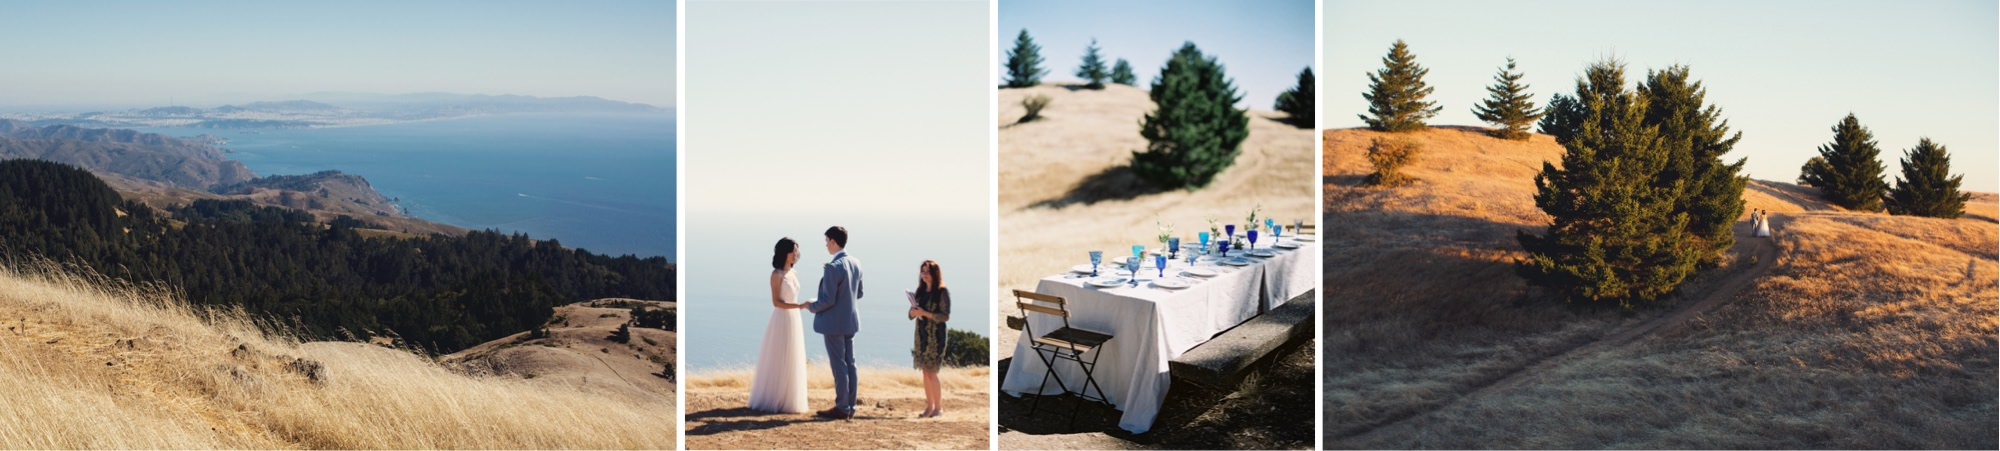 Mount Tam ceremony photos